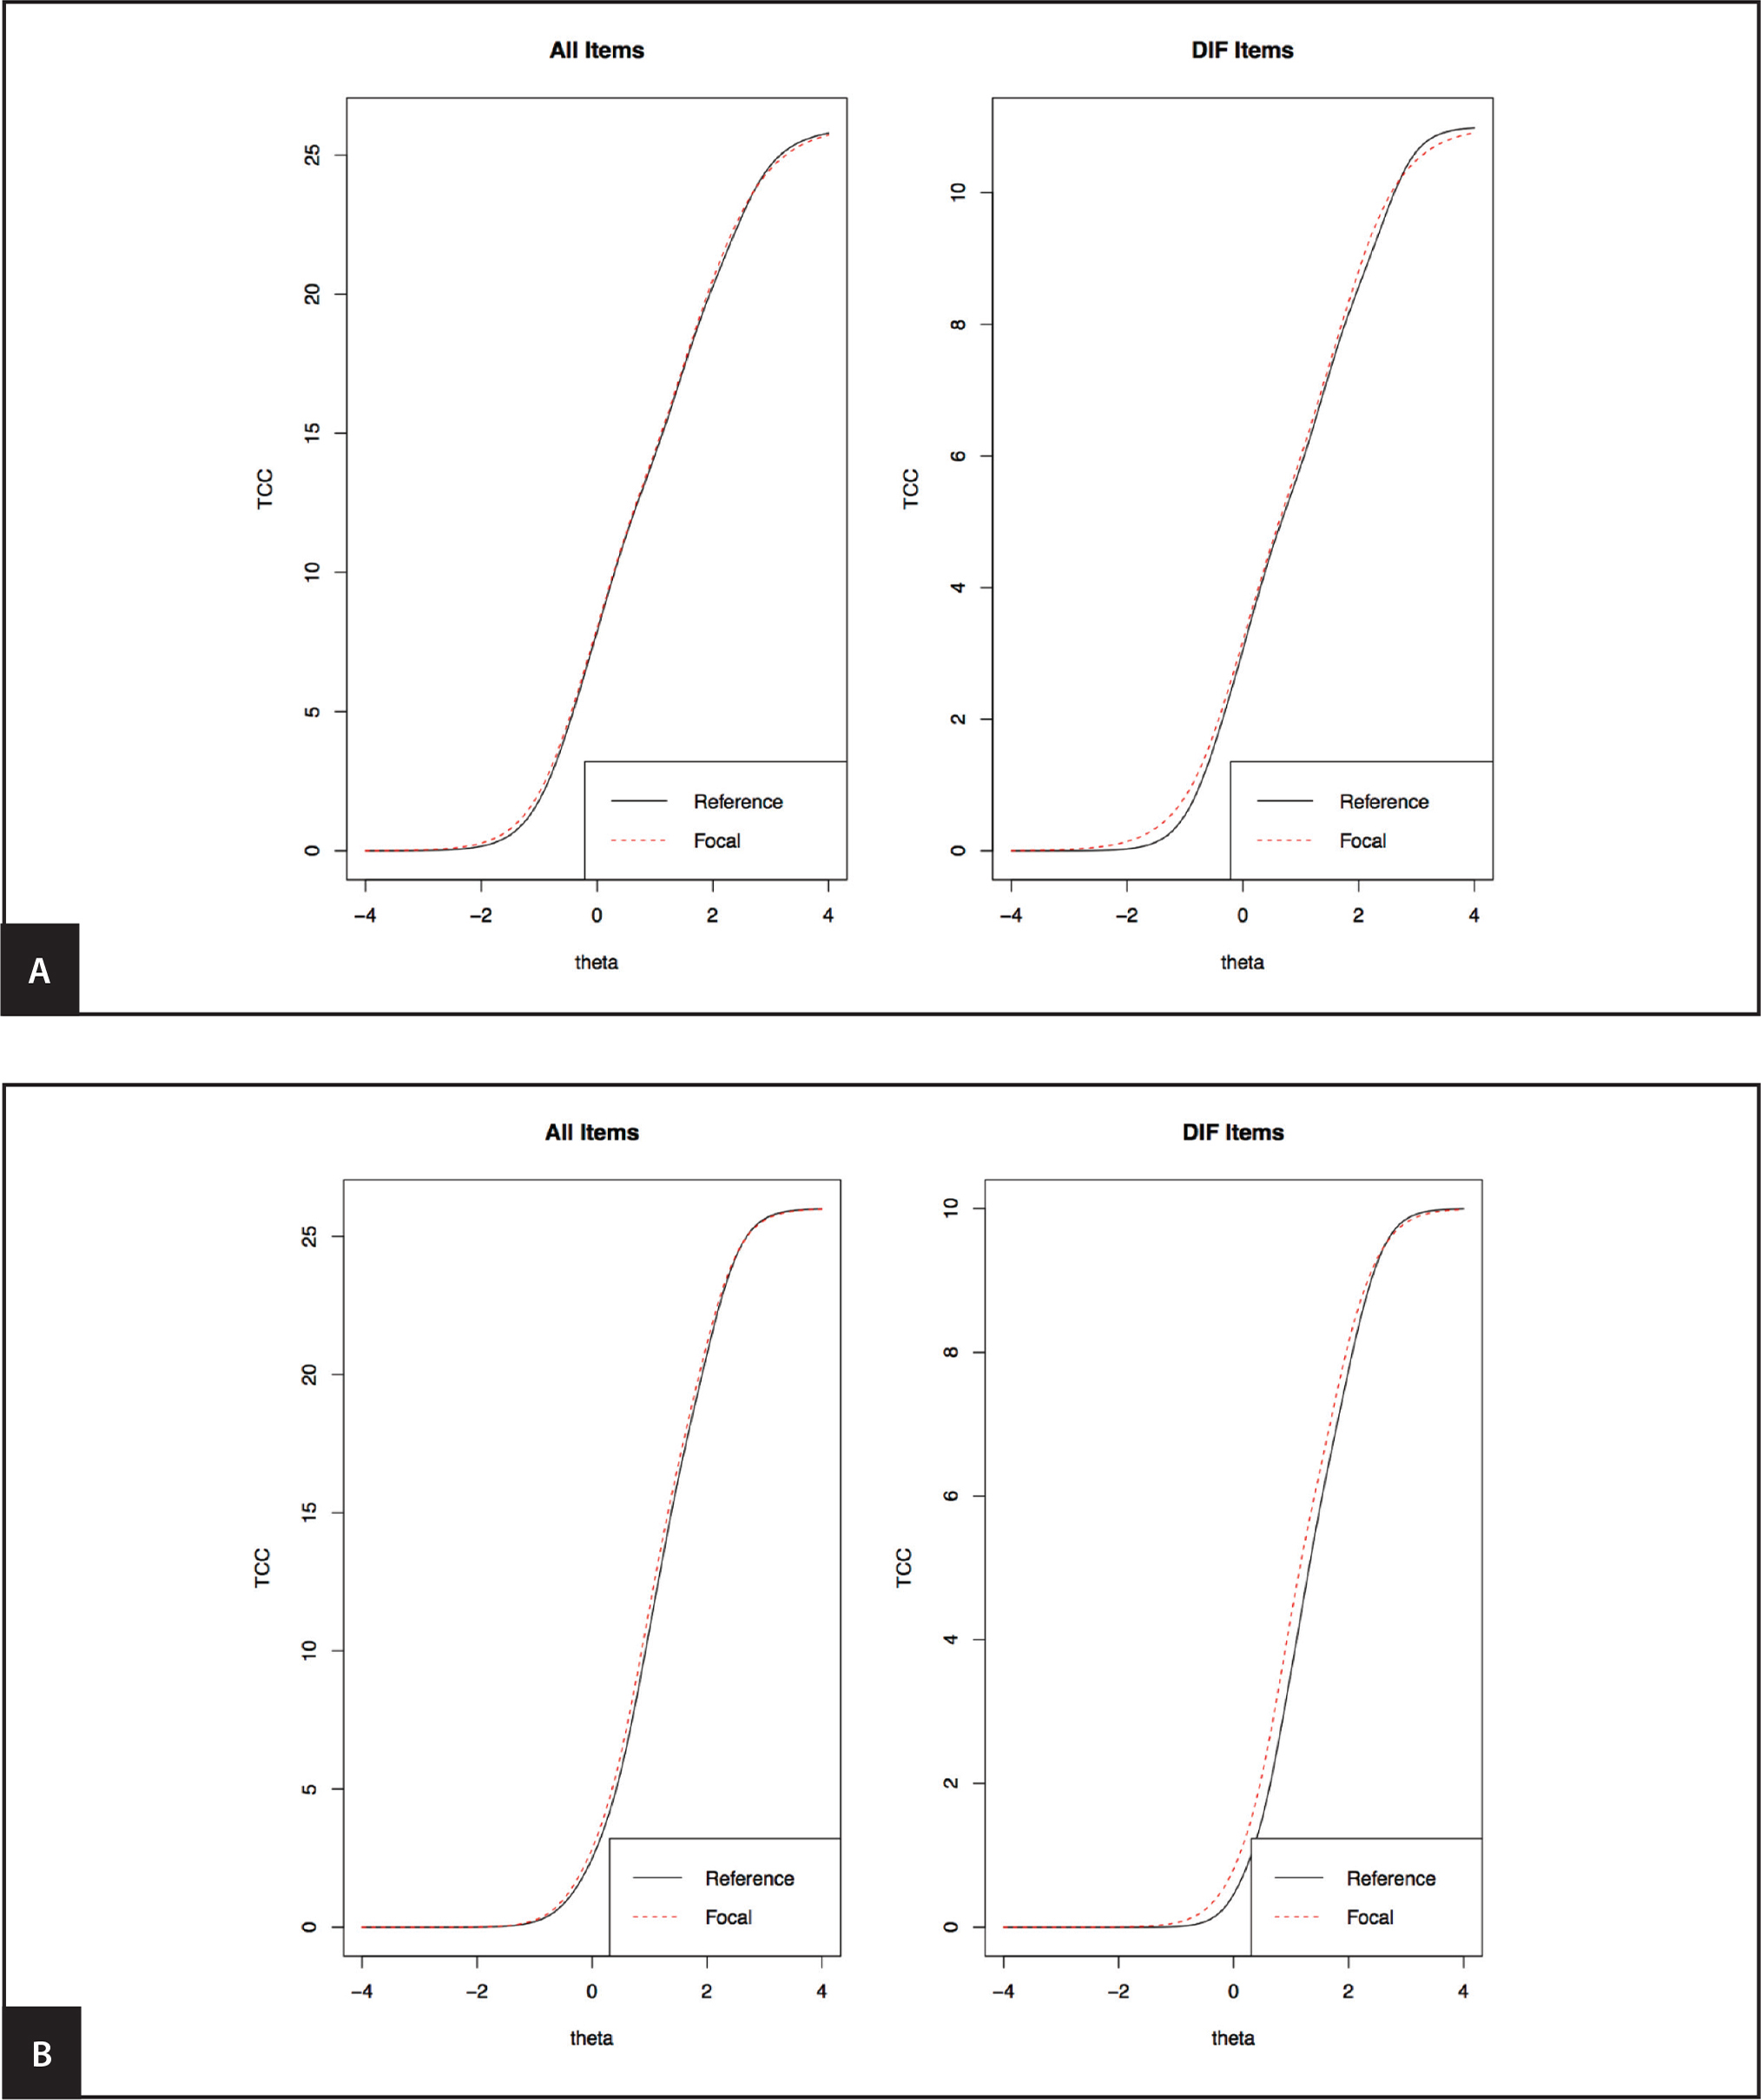 (A) Test characteristic curves (TCCs) for anxiety short form 7a. The TCCs for limited versus adequate health literacy are overlapping, suggesting that measurement precision for the anxiety Patient-Reported Outcomes Measurement Information System (PROMIS) scale is similar across the two groups, across level of anxiety. Reference denotes adequate literacy; Focal denotes limited literacy. Theta is the anxiety metric on a standardized scale (M = 0, SD = 1 by definition). (B) TCCs for depression short form 8b. The TCCs for limited versus adequate health literacy are overlapping, suggesting that measurement precision for the depression PROMIS scale is similar across the two groups, across level of depression. Reference denotes adequate literacy; focal denotes limited literacy. Theta is the depression metric on a standardized scale (M = 0, SD = 1 by definition). DIF = differential item functioning.